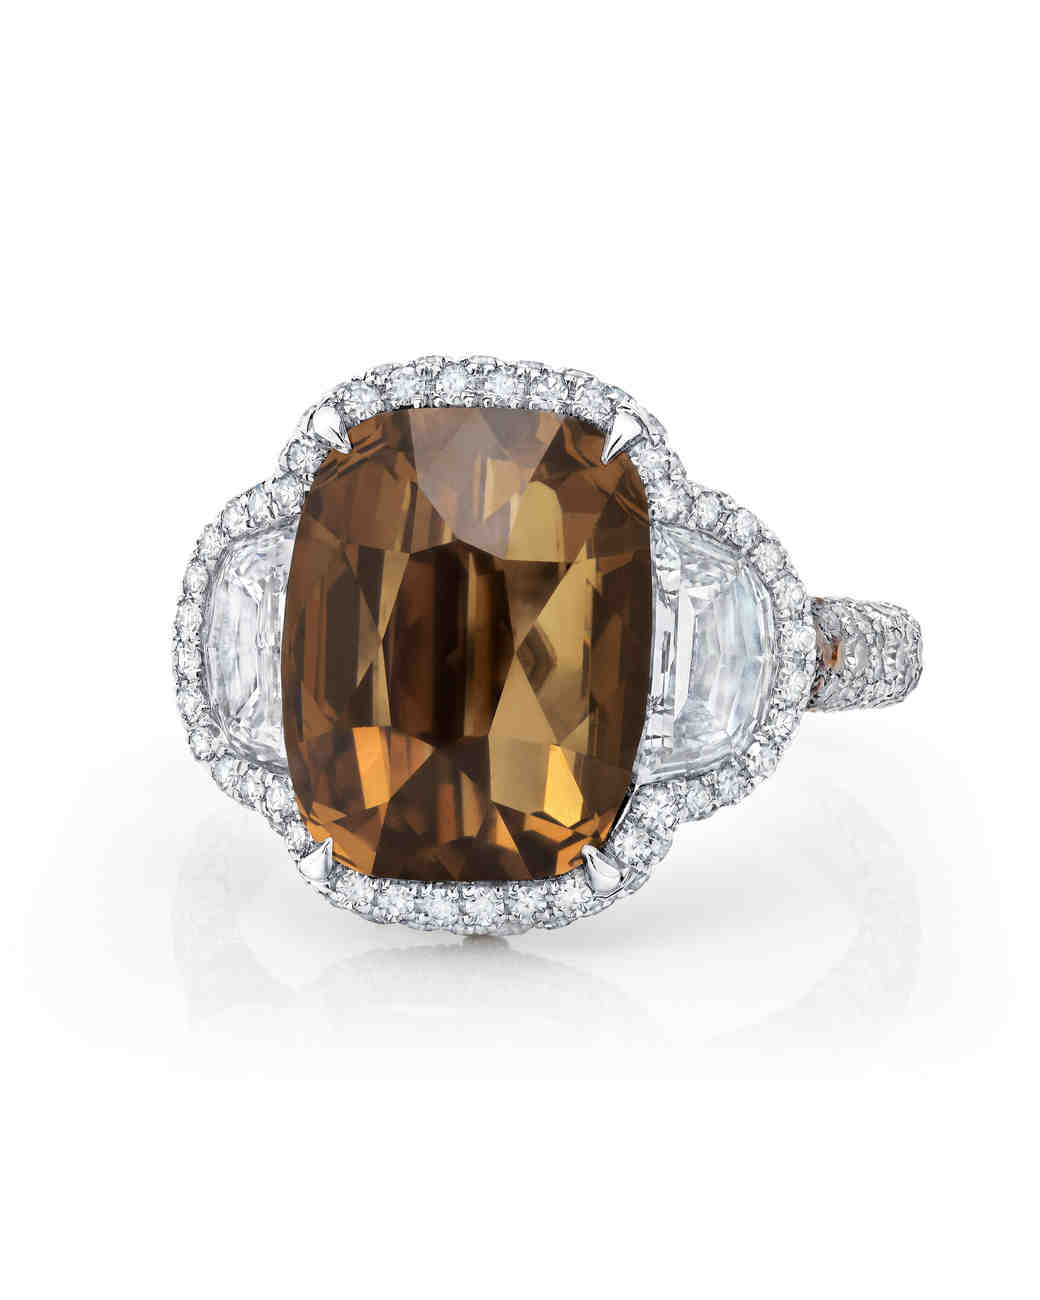 colored-engagement-rings-martin-katz-dark-yellow-diamond-0316.jpg